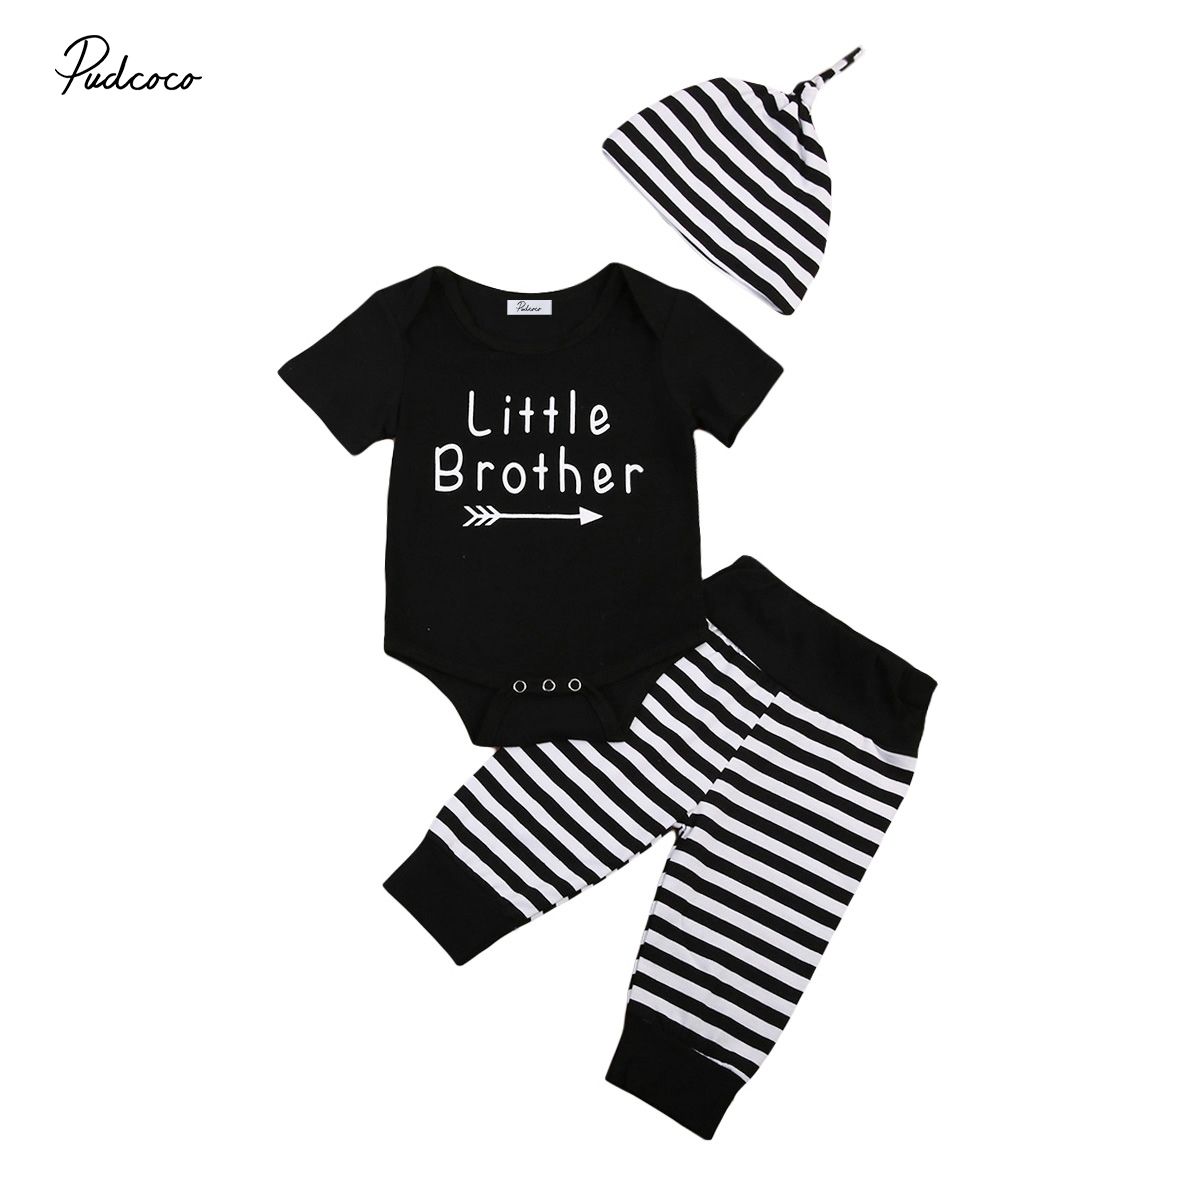 2017 Newborn Infant Baby Boy Clothes Set Outfits Clothes Little Brother Boy Romper Jumpsuit Pants 3pcs Outfits Boy Clothes Set cute newborn infant baby girl boy long sleeve top romper pants 3pcs suit outfits set clothes